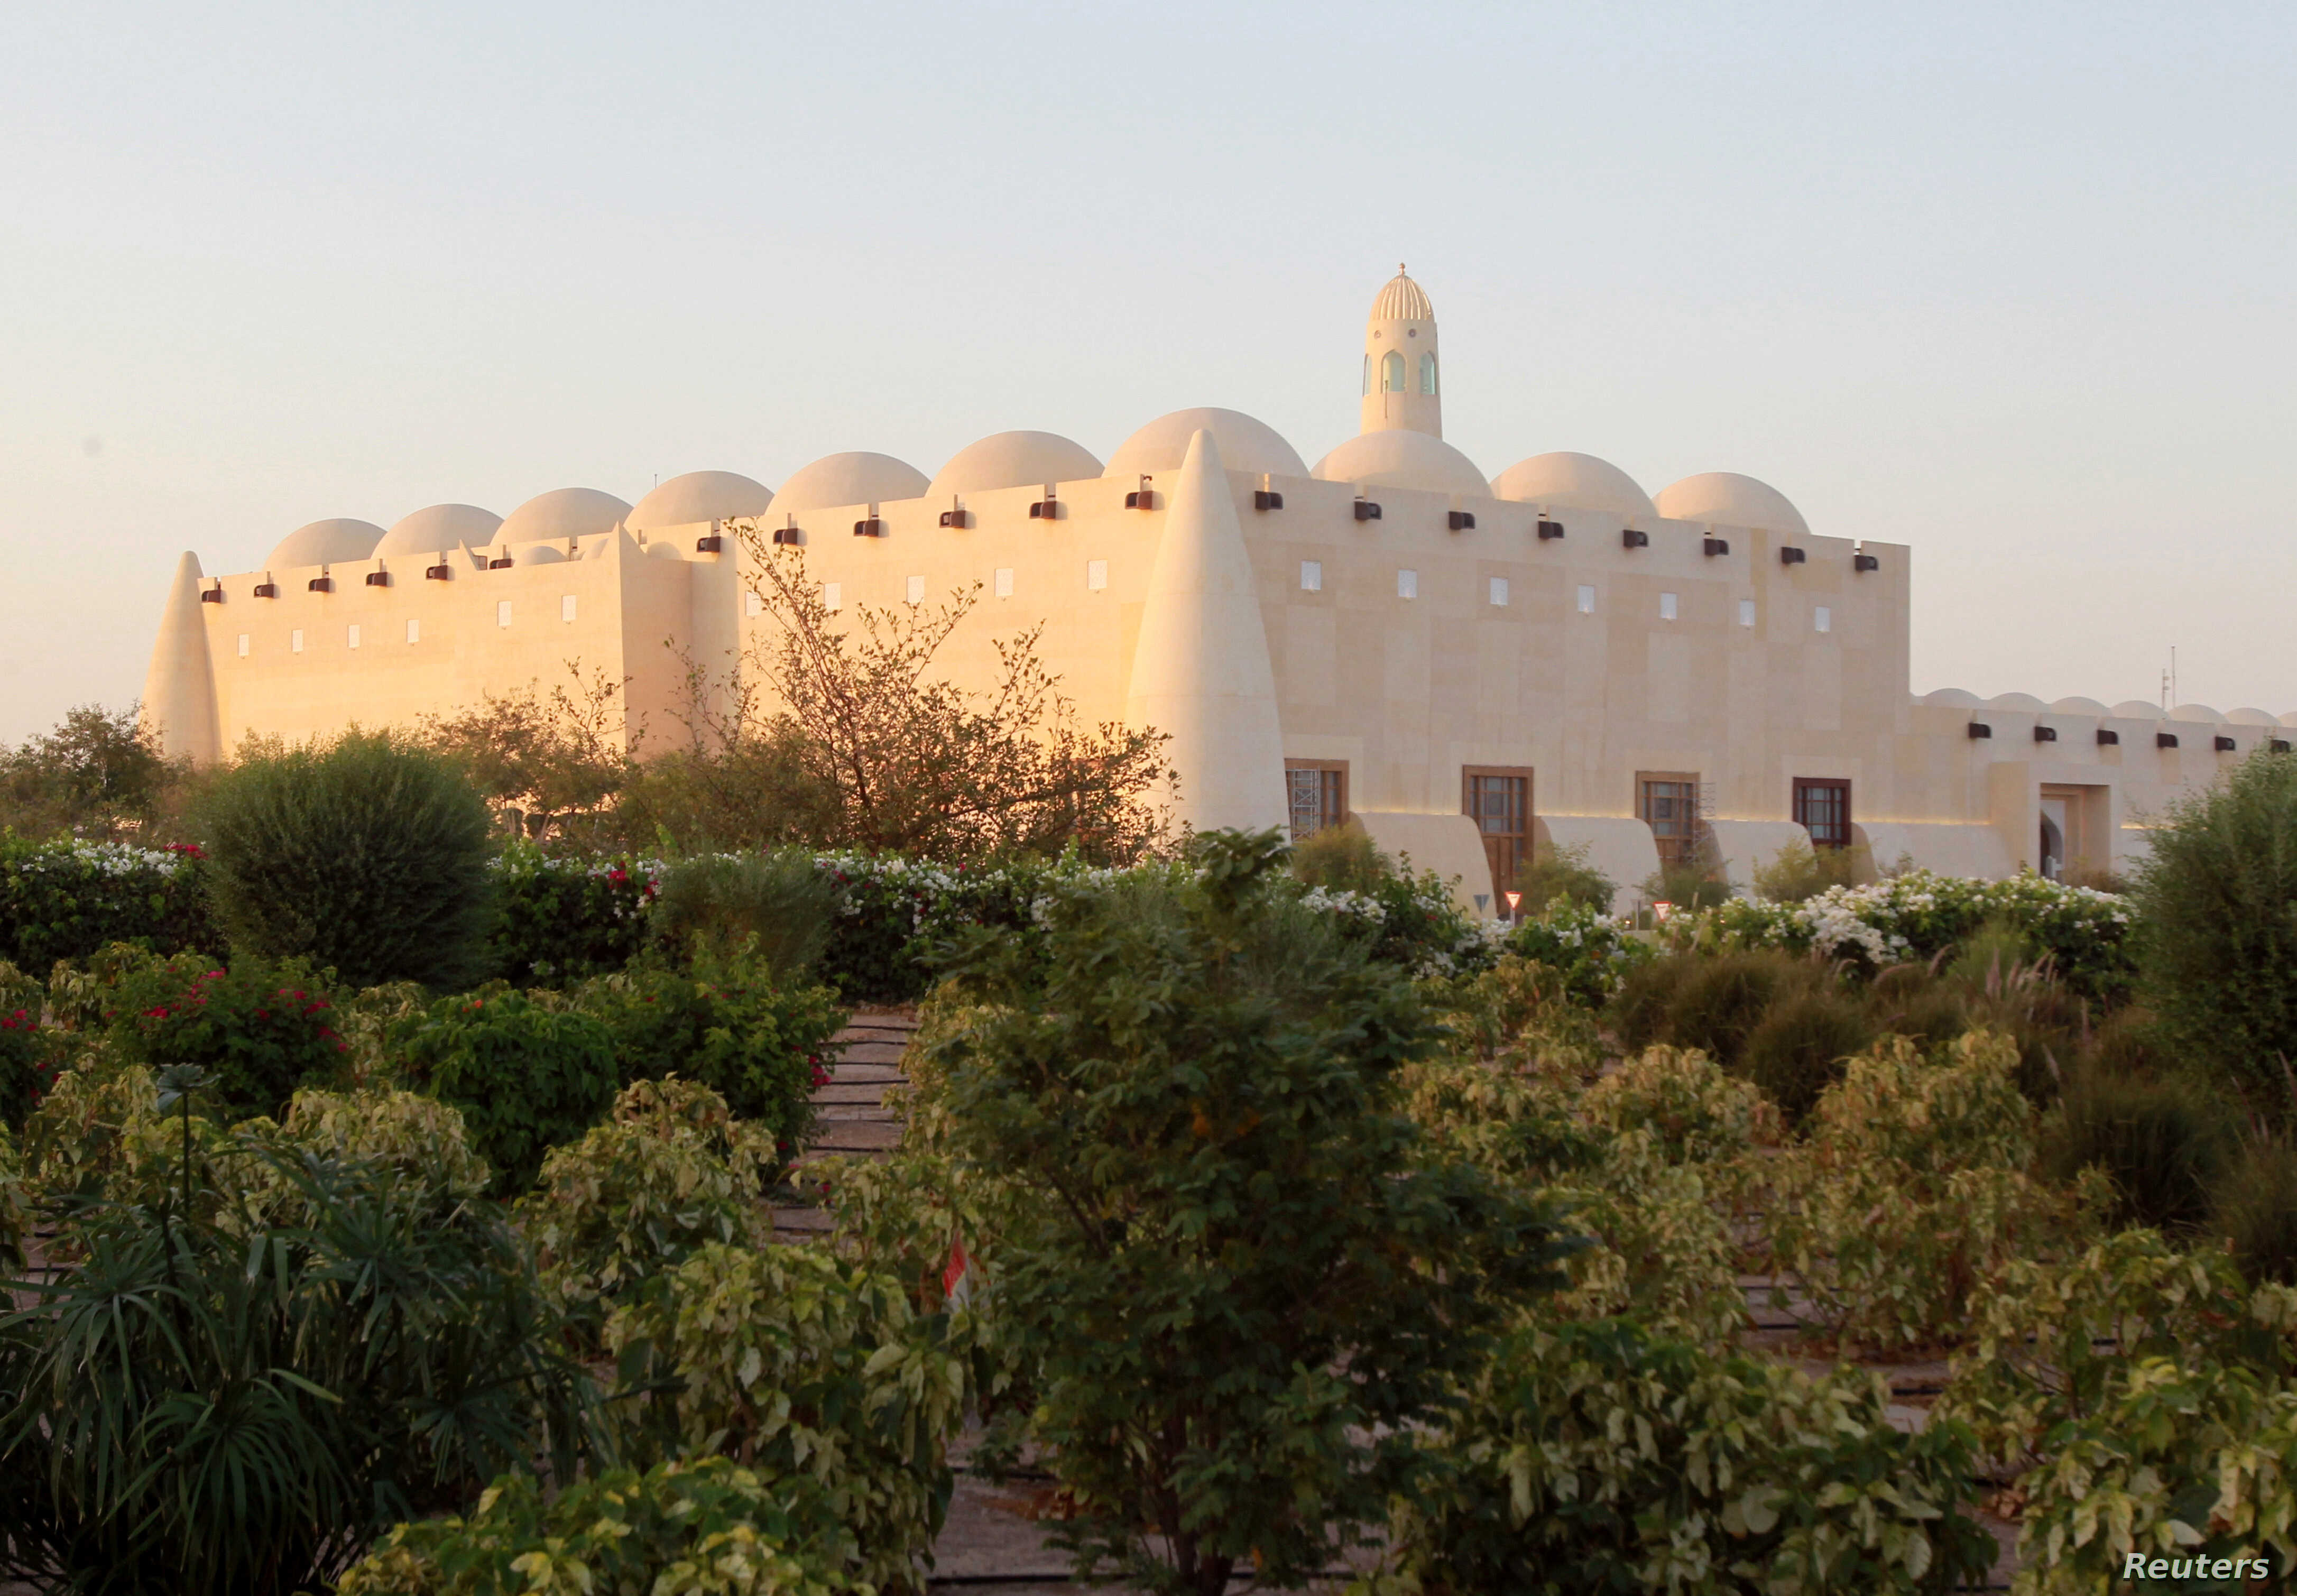 FILE - A view shows Imam Muhammad ibn Abd al-Wahhab Mosque in Doha, Qatar, June 9, 2017.